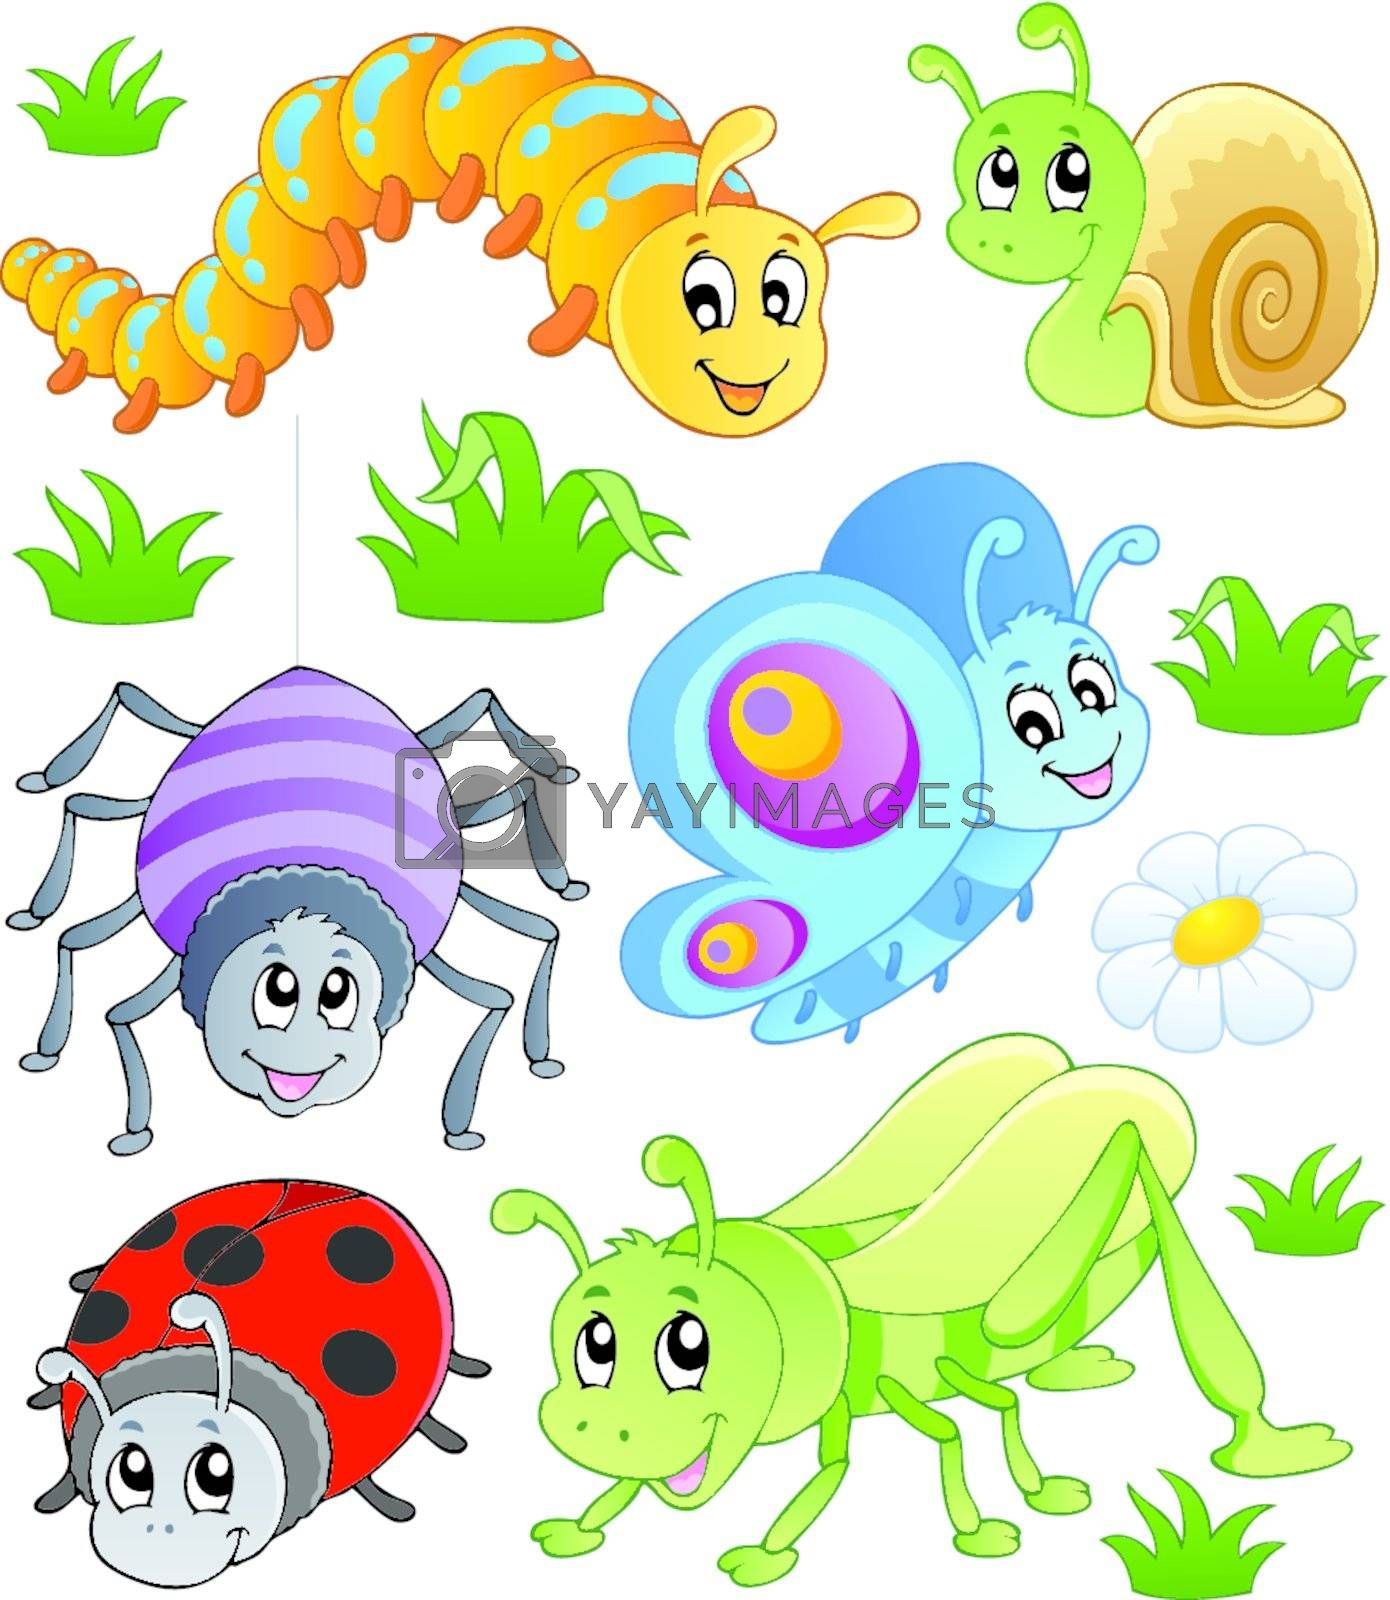 Cute bugs collection 1 by clairev